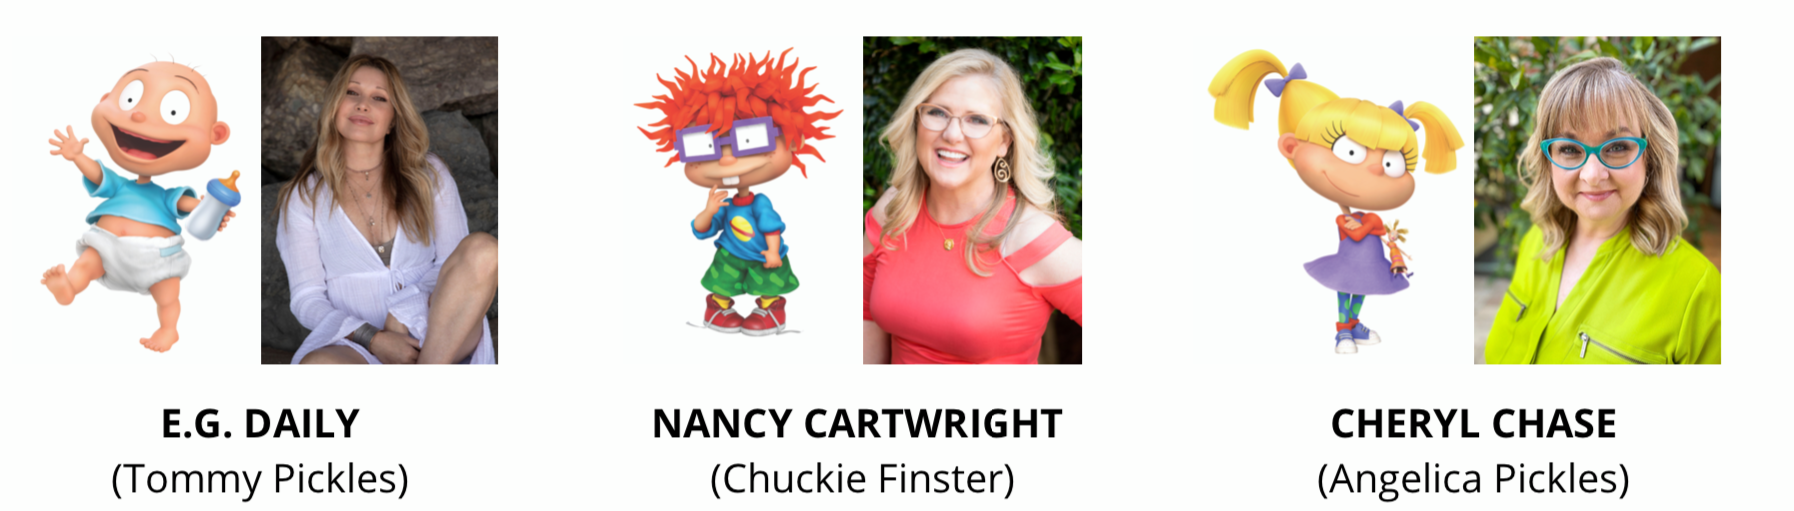 Pictured: The cast of the Paramount+ series RUGRATS.